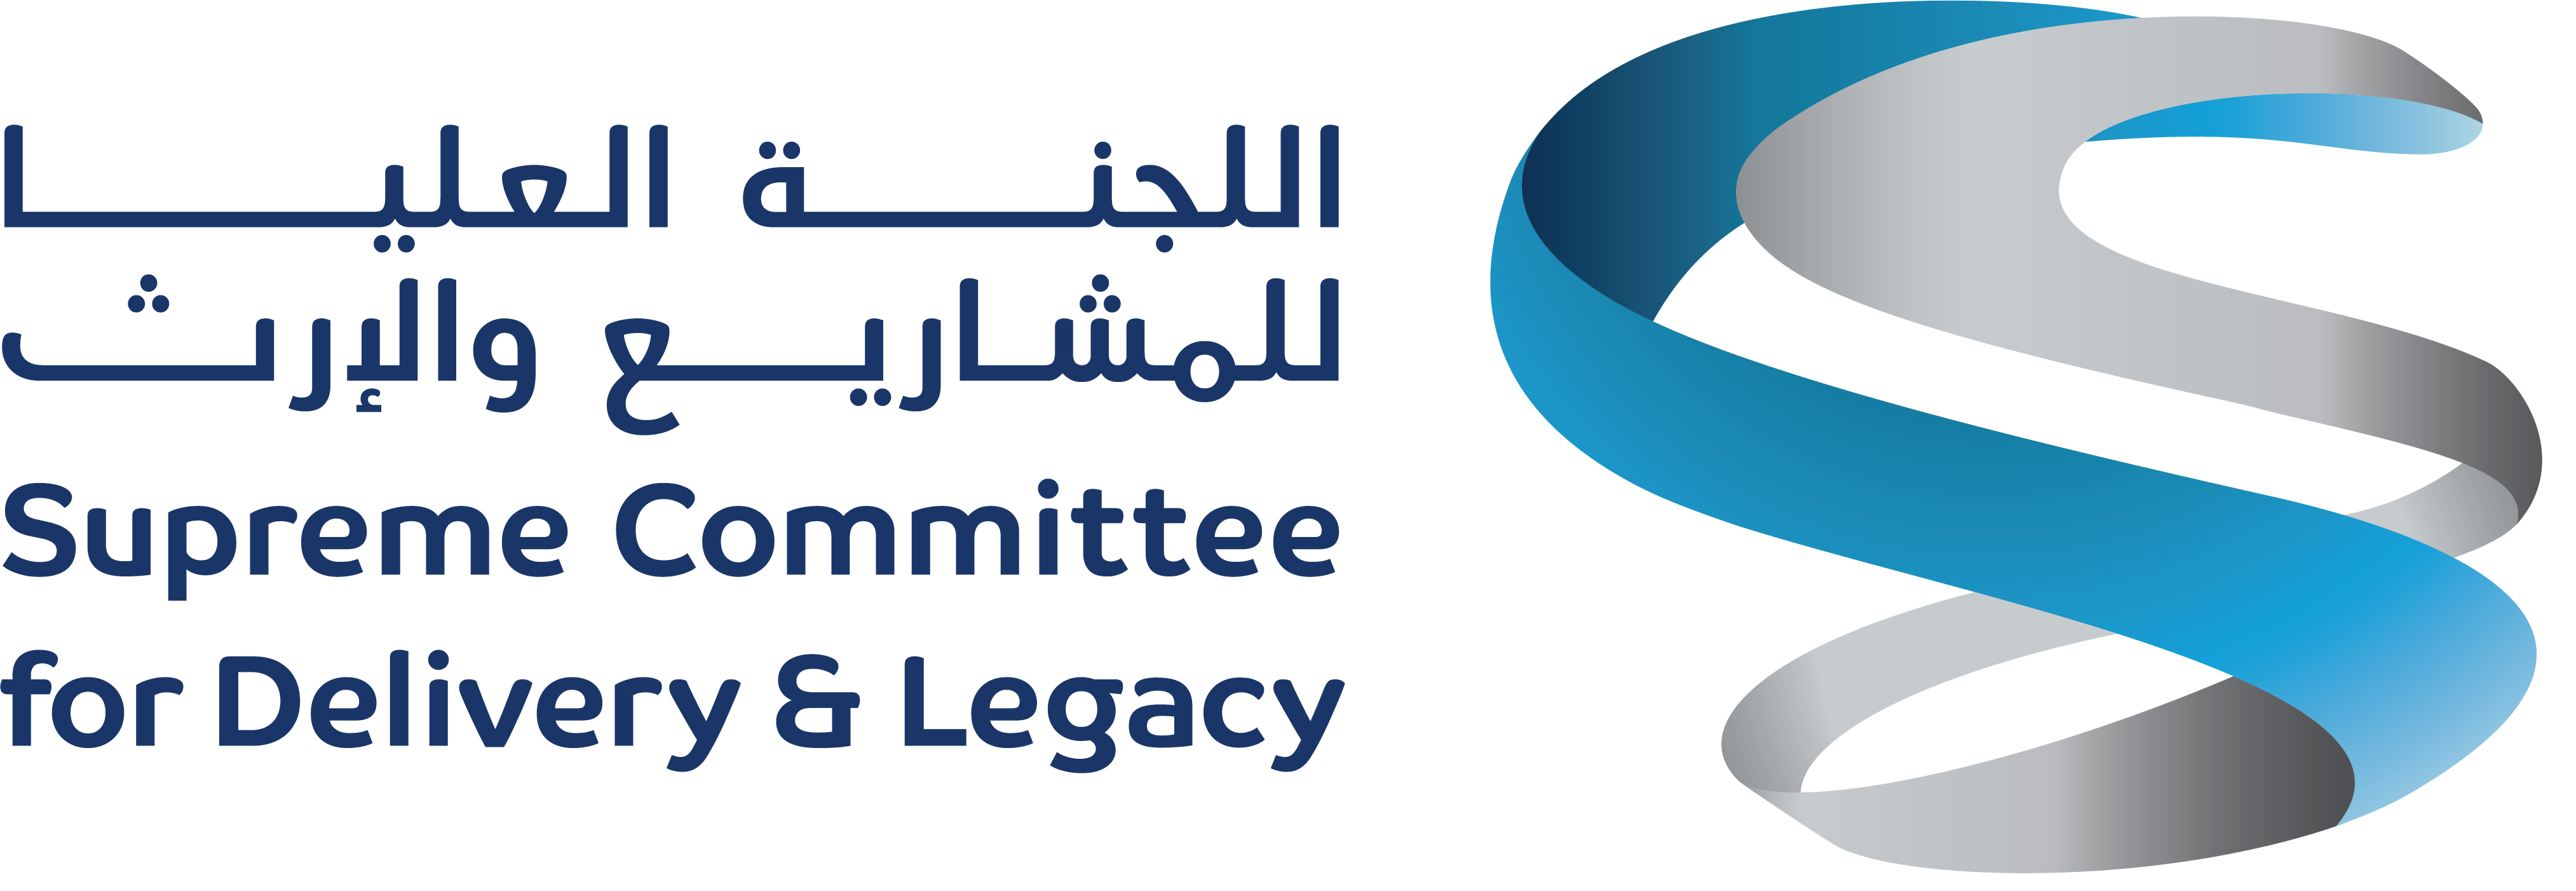 Qatar 2022 Supreme Committee for Delivery and Legacy